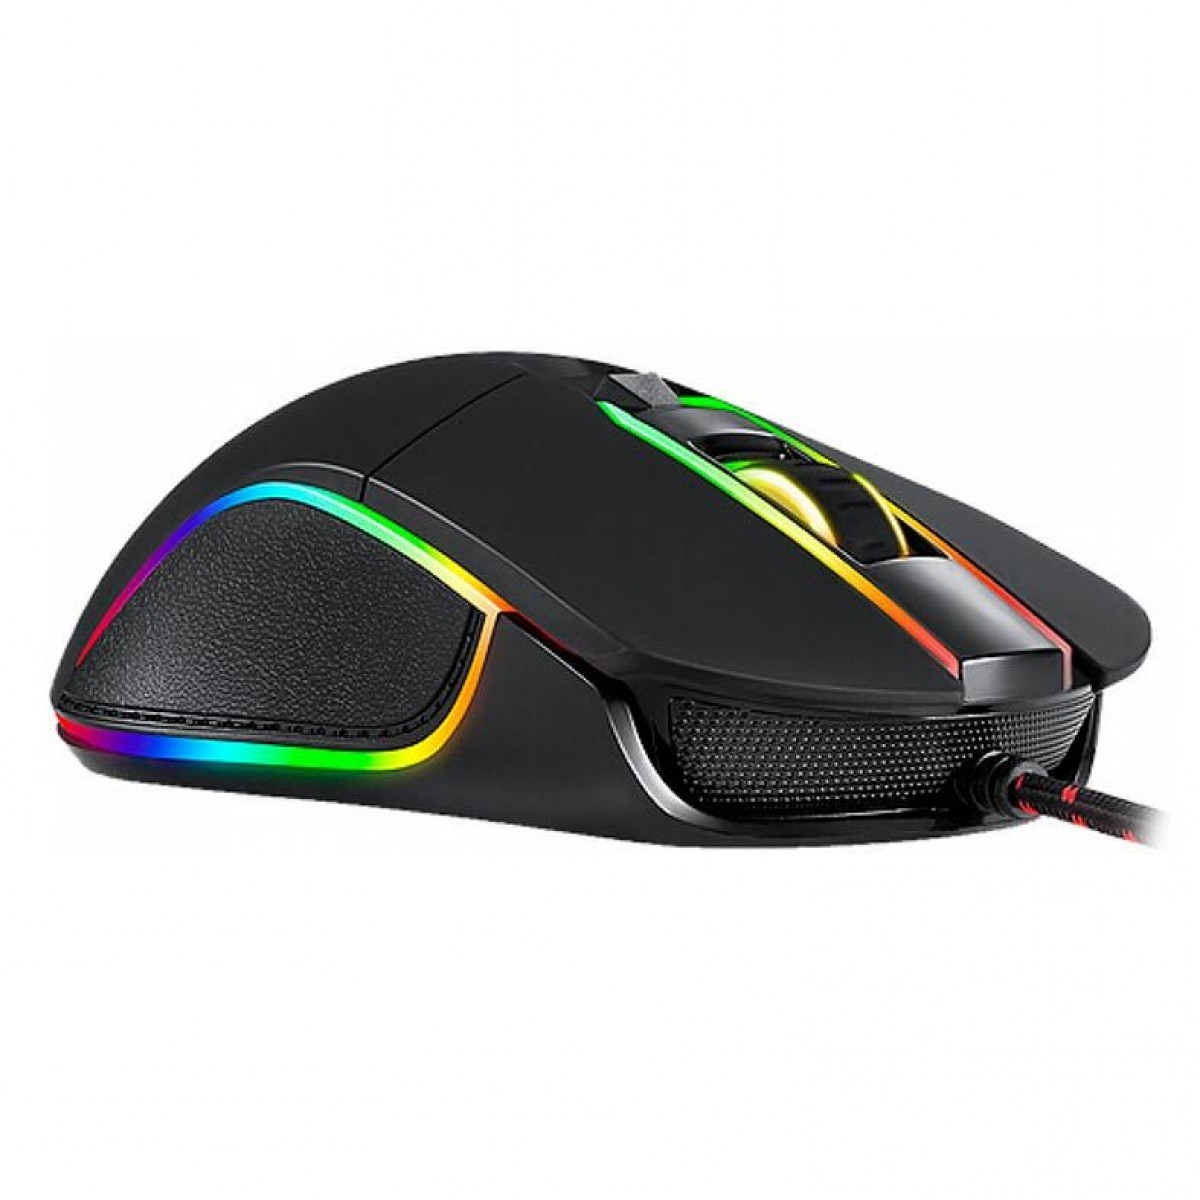 Mouse Gamer Motospeed V30, 3500 DPI, RGB, Black, FMSMS0003PTO